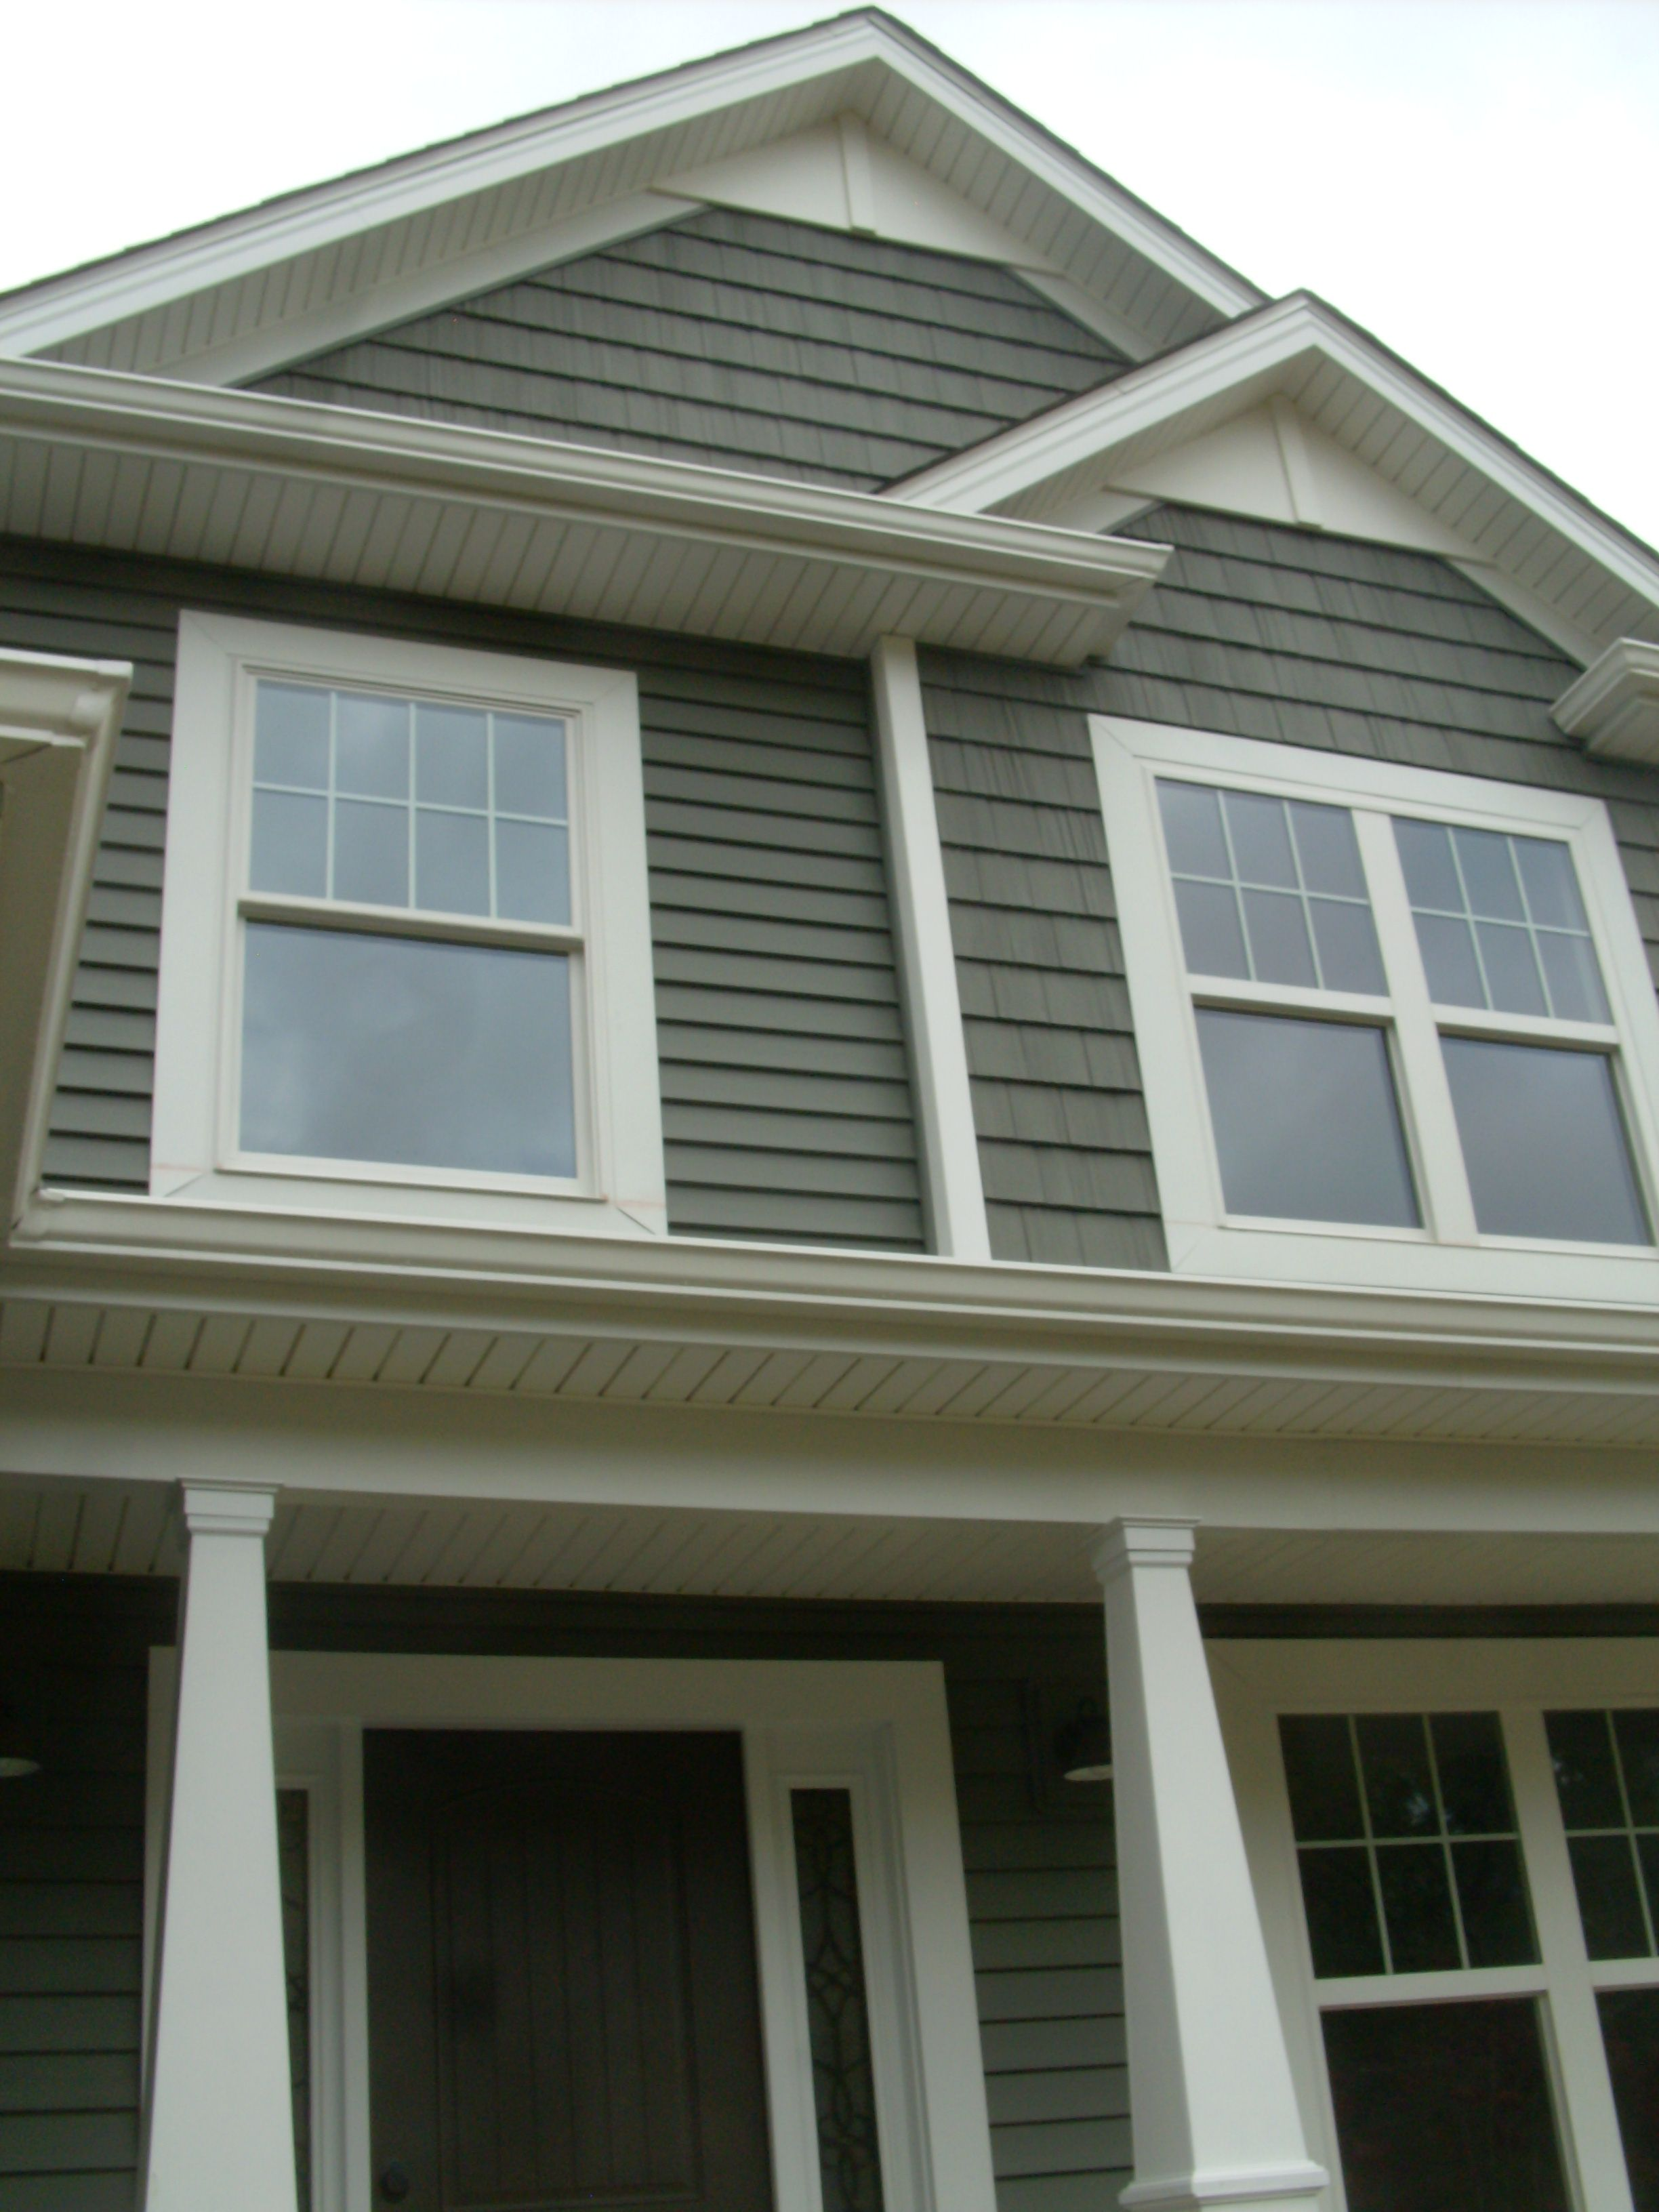 Wood siding kaycan engineered wood siding for Manufactured wood siding